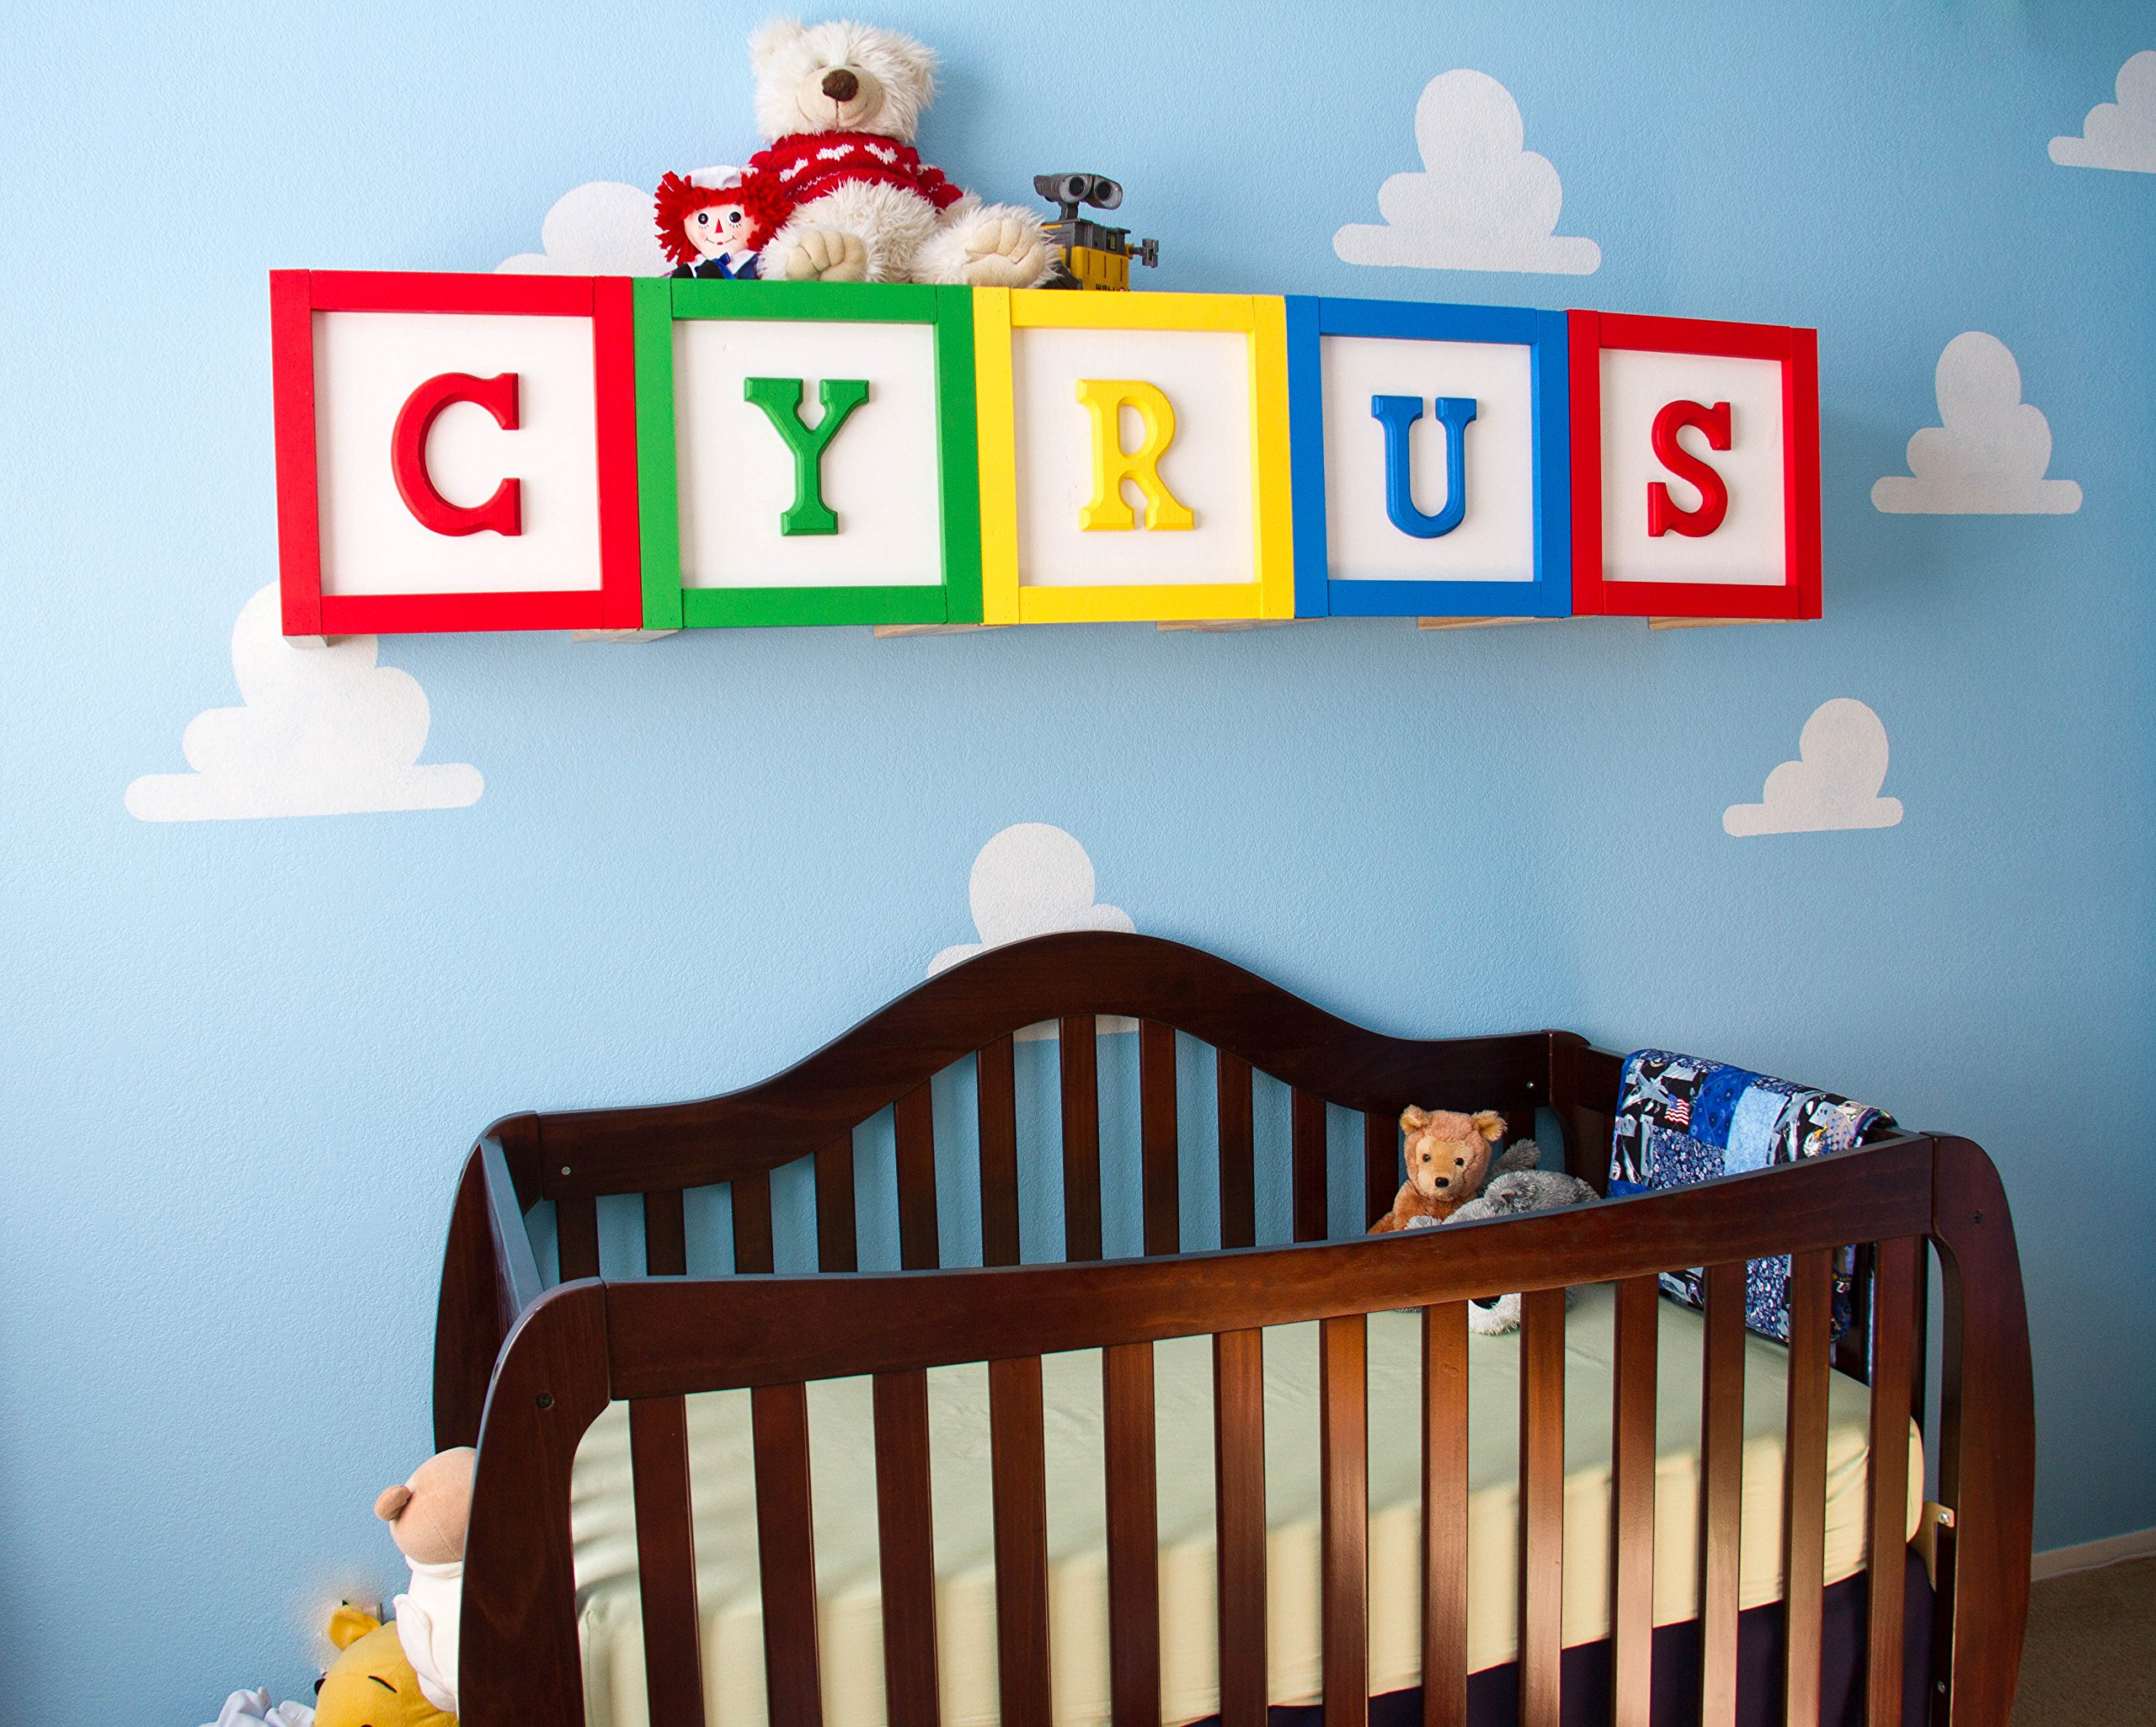 Cloud Stencil Set for Wall Decor: Reusable Stencils for a Kid's Toy Story Room or Andy's Room Nursery, 2-Pack Includes 1 Large and 1 Small Cloud Stencil by Living Lullaby Designs (Image #6)